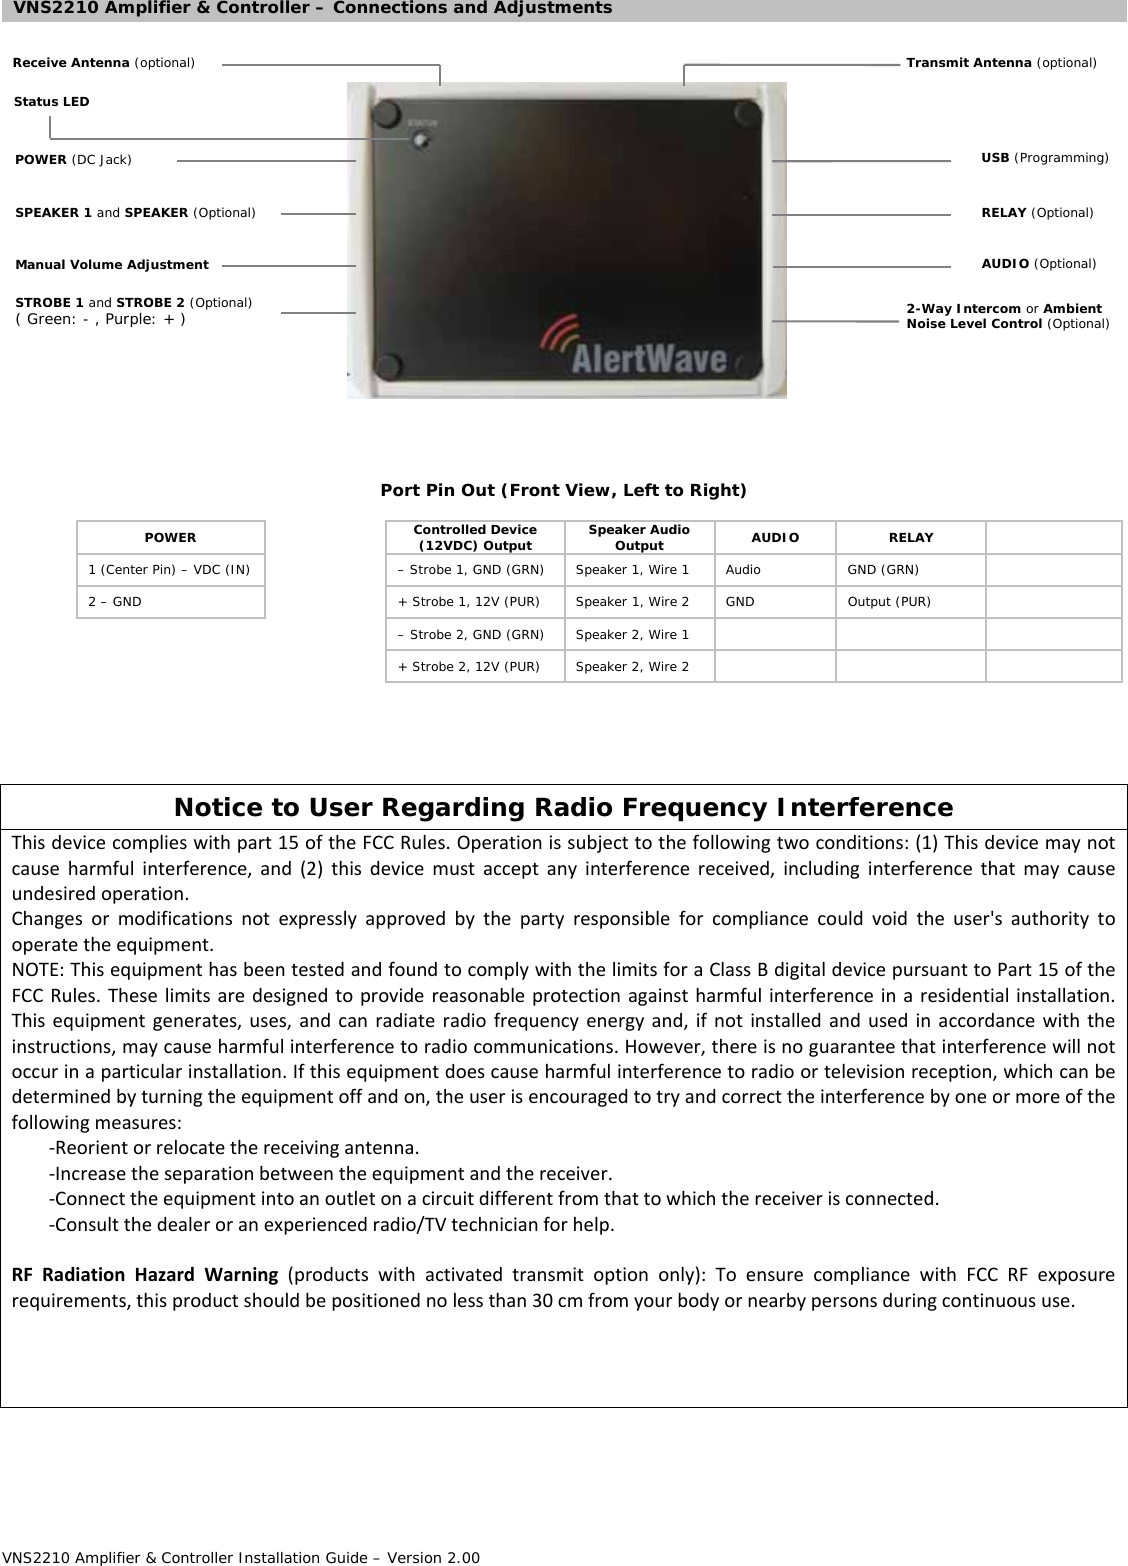 We Are Your Friends Images1 Where Is The Relay For Manual Guide